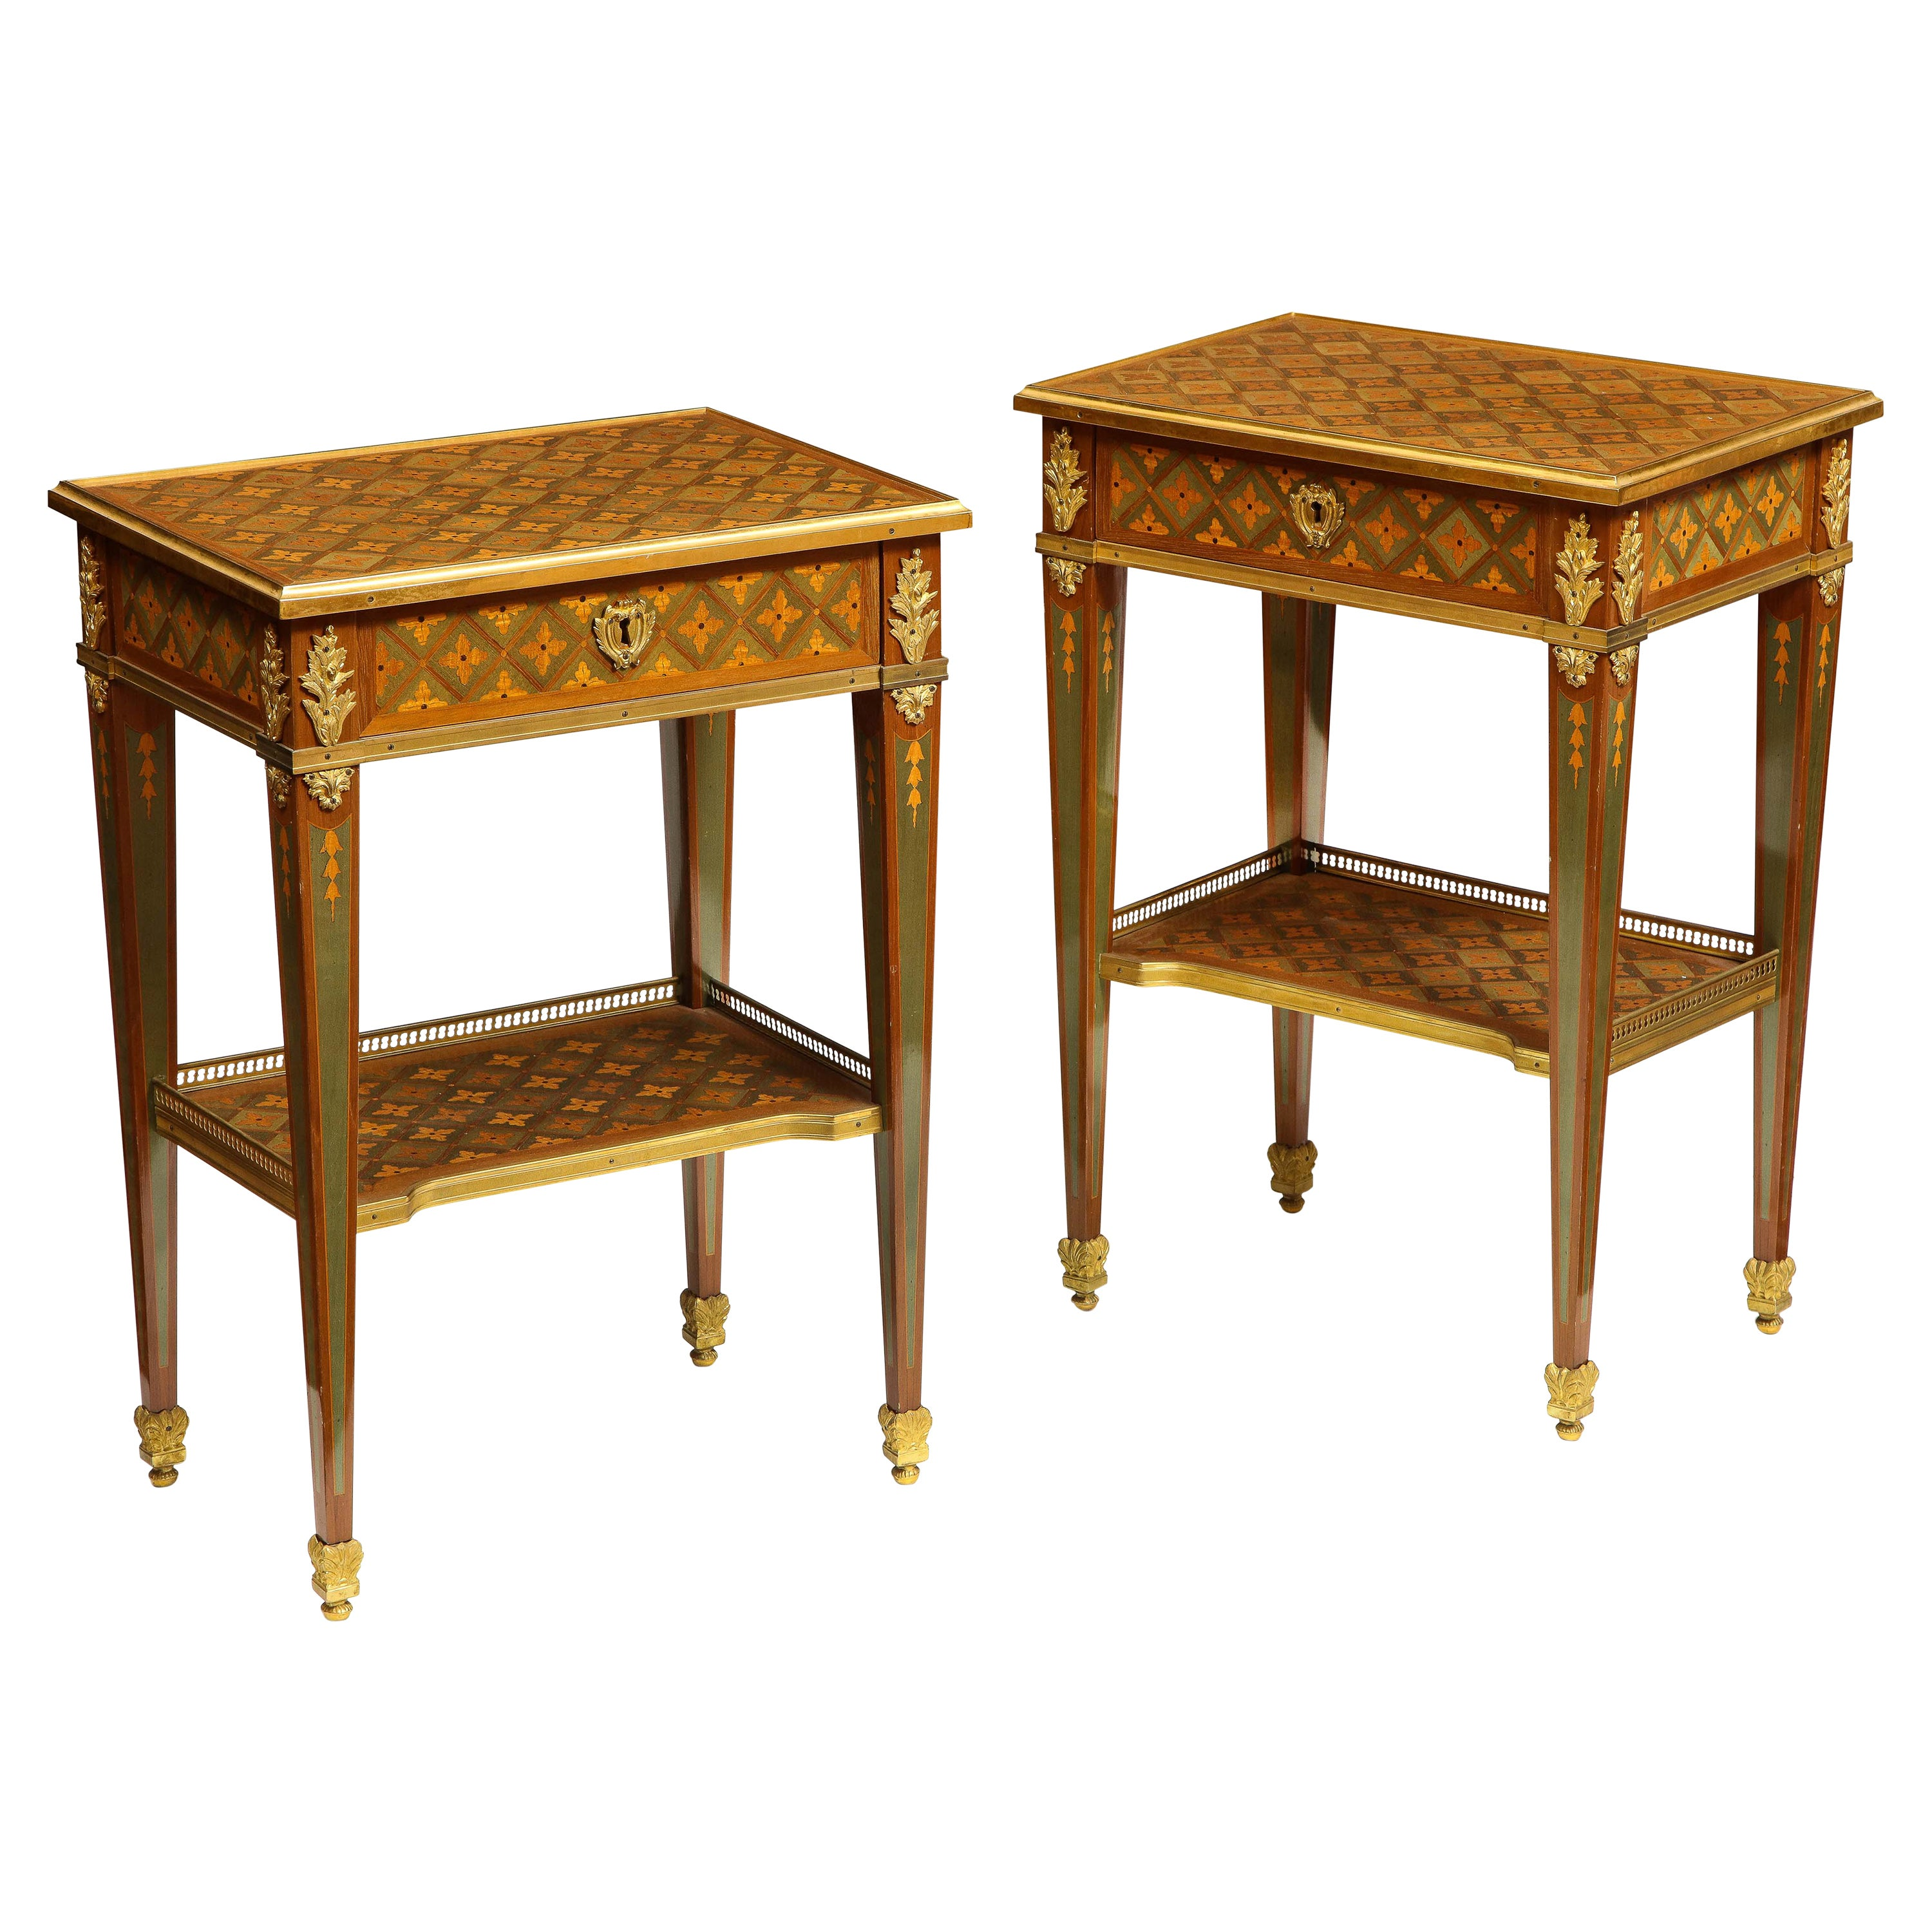 Exceptional Pair of French Ormolu-Mounted Parquetry and Marquetry Side Tables